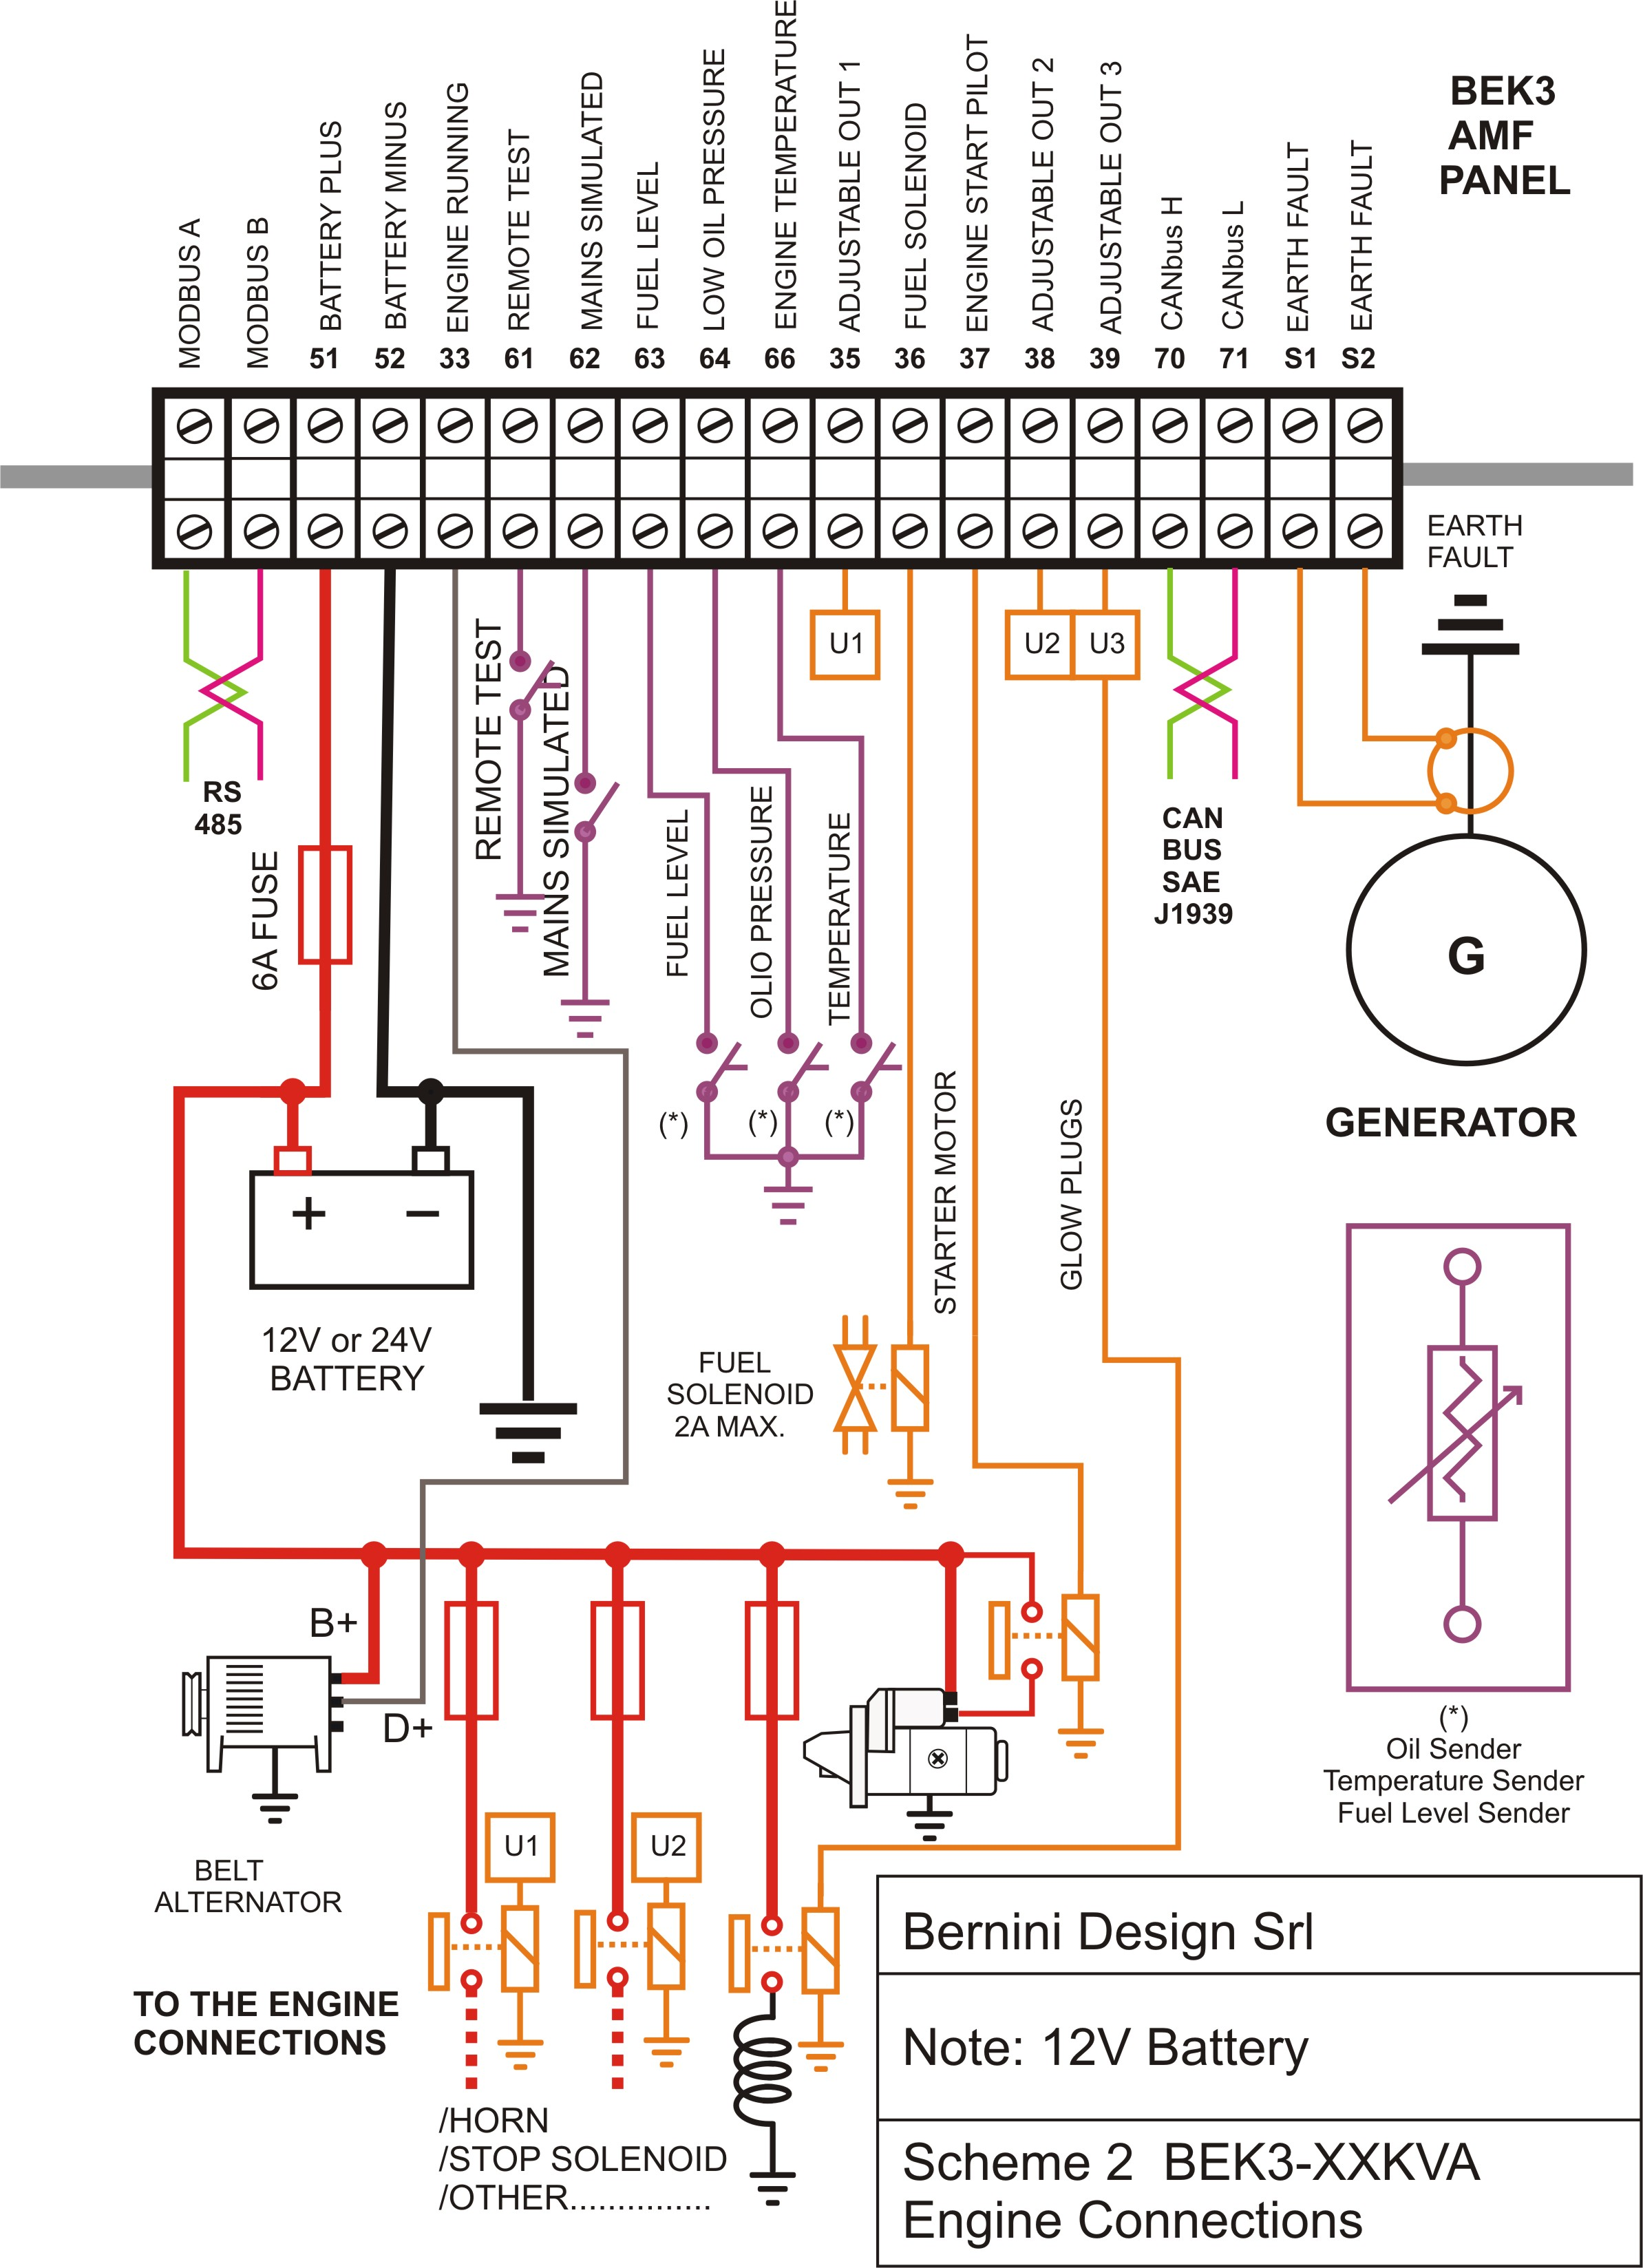 Diesel Generator Control Panel Wiring Diagram Engine Connections wiring diagram generator readingrat net stamford generator wiring diagram at soozxer.org